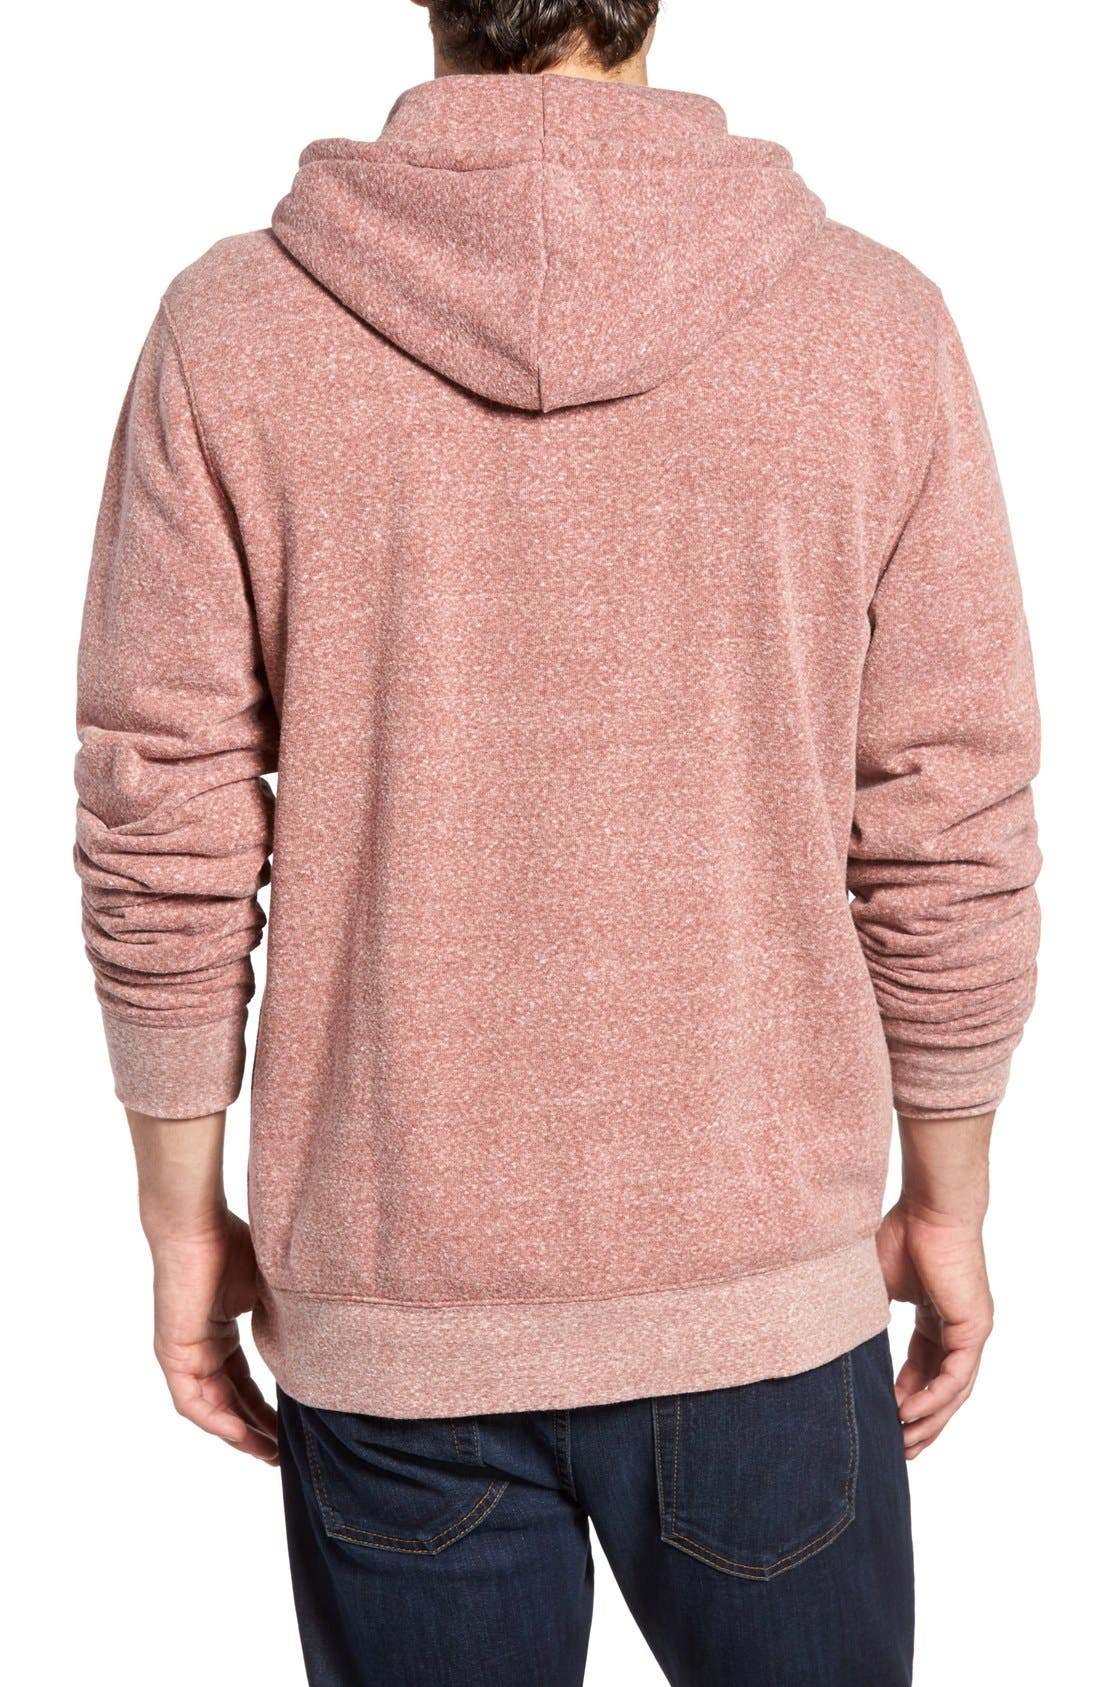 Threads for Thought Trim Fit Heathered Hoodie,                             Main thumbnail 26, color,